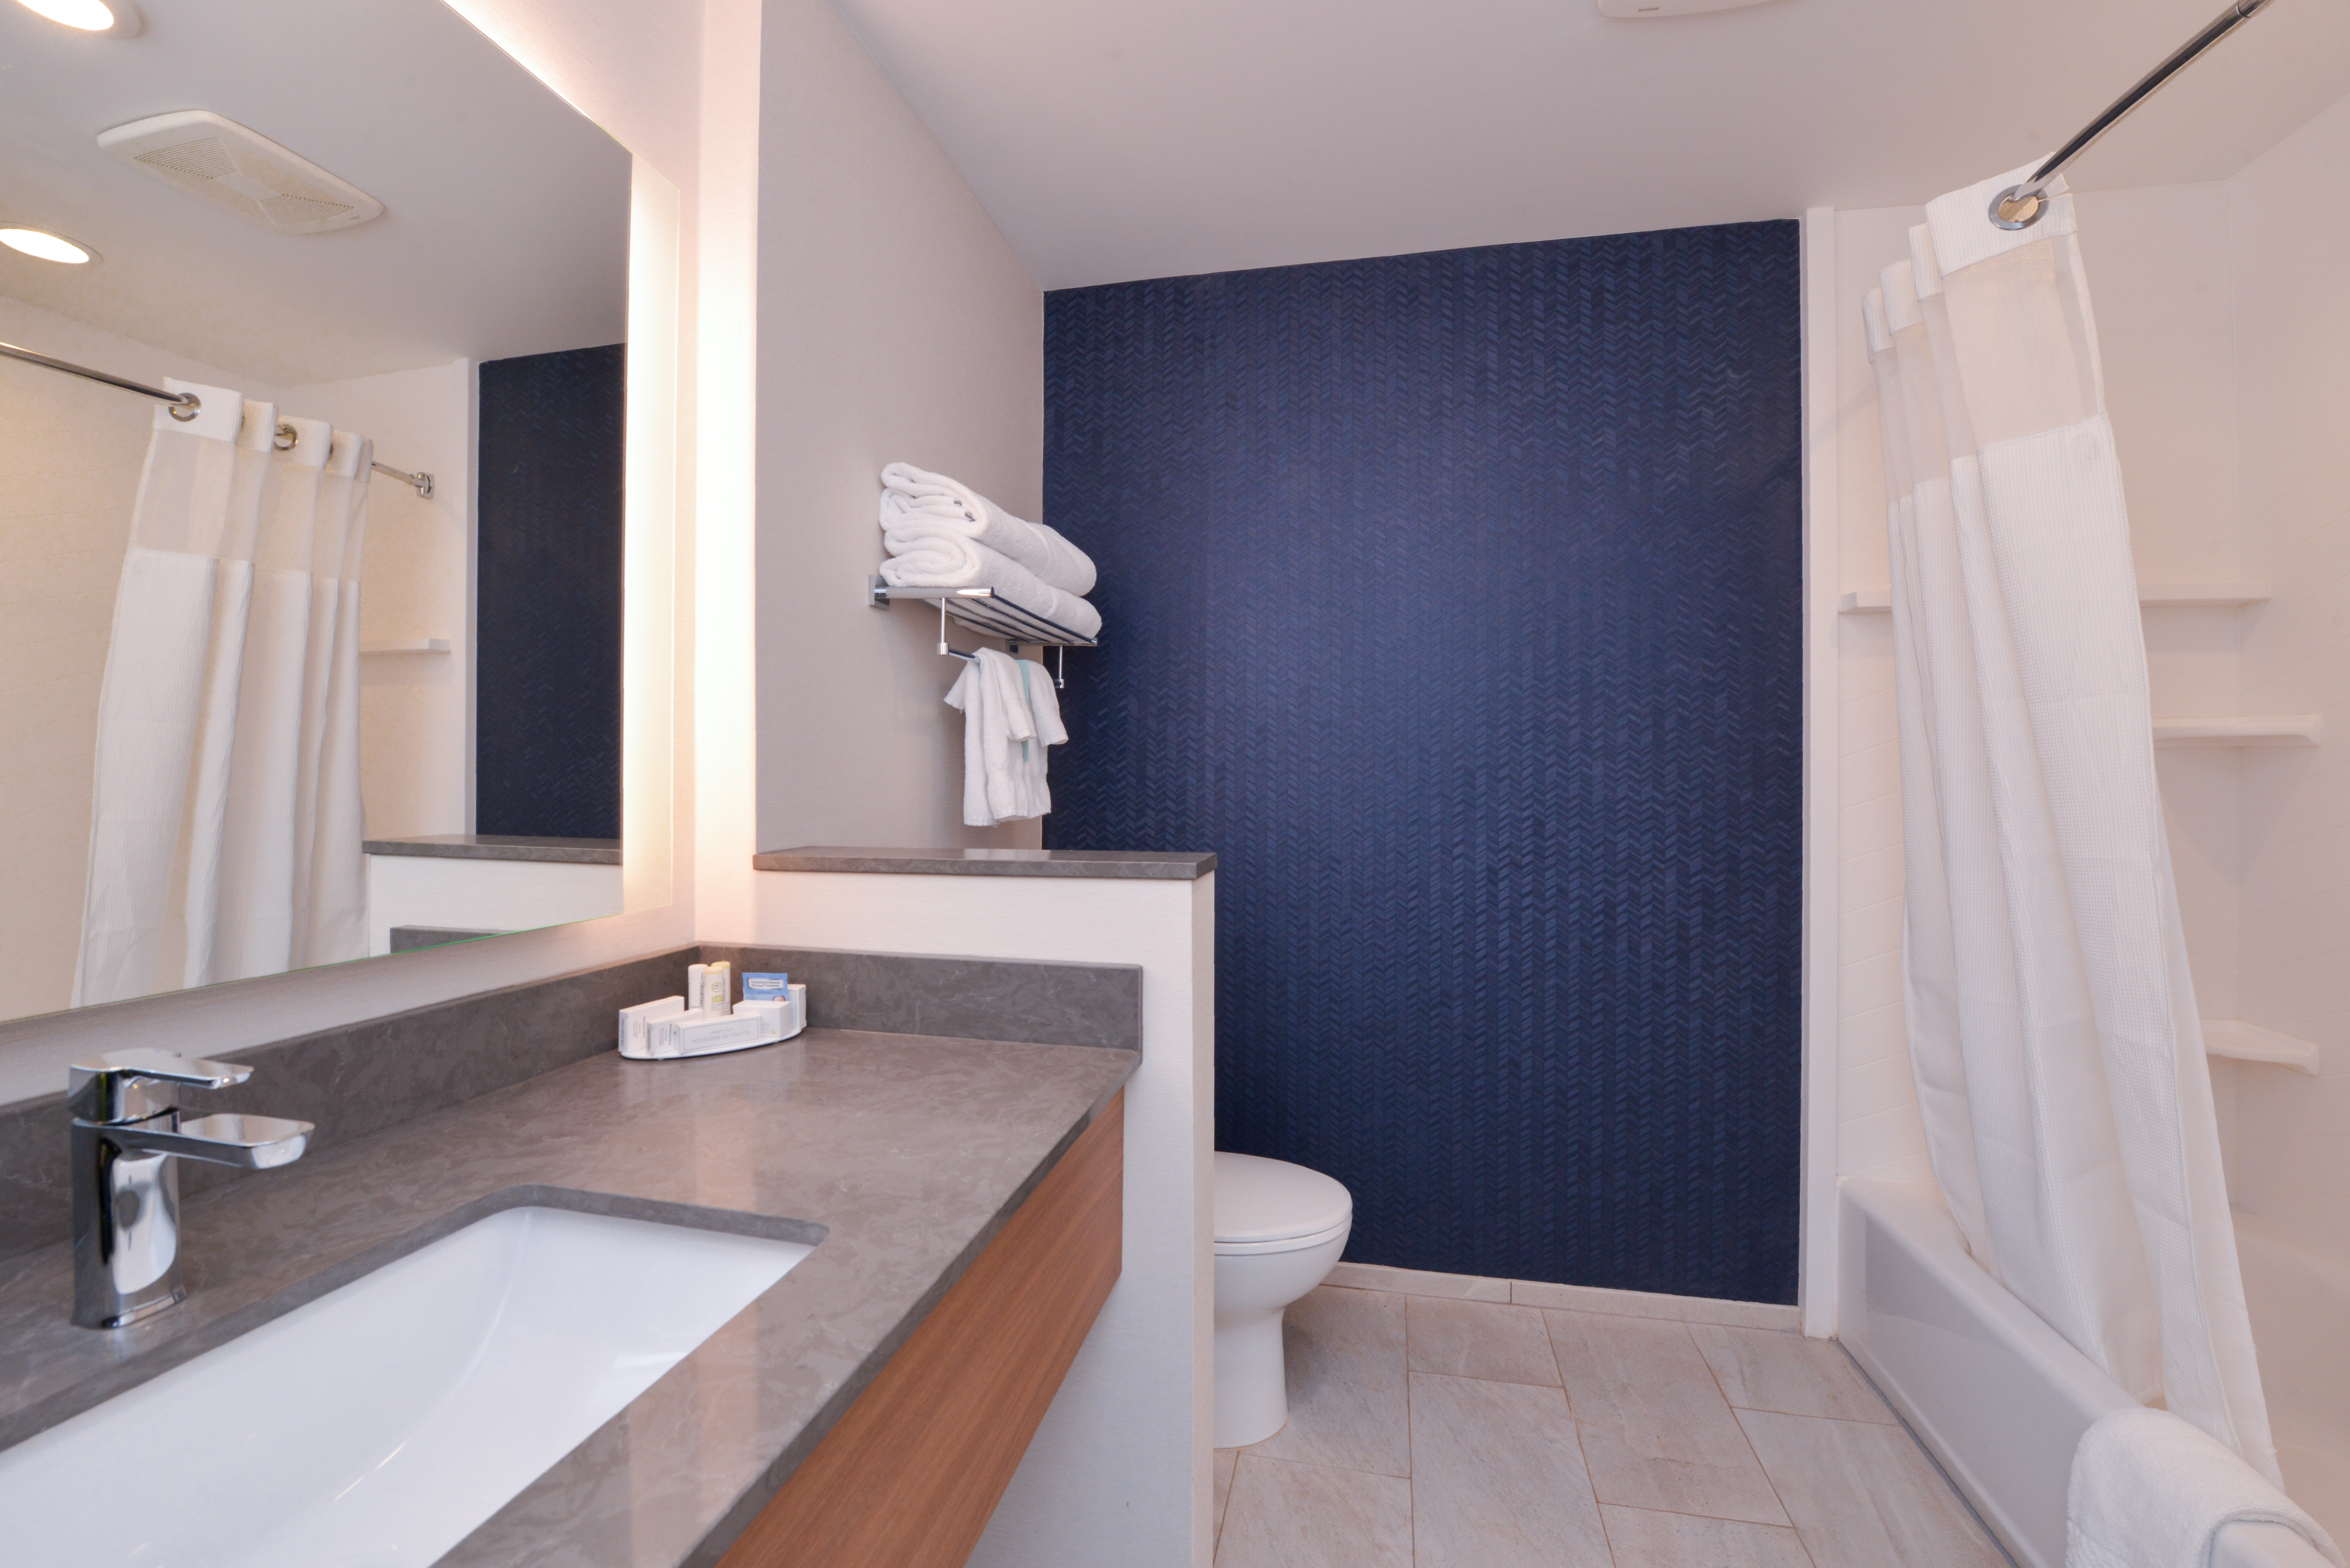 https://www.hotelsbyday.com/_data/default-hotel_image/3/15897/fis-cmhfg-bathroom4.jpg